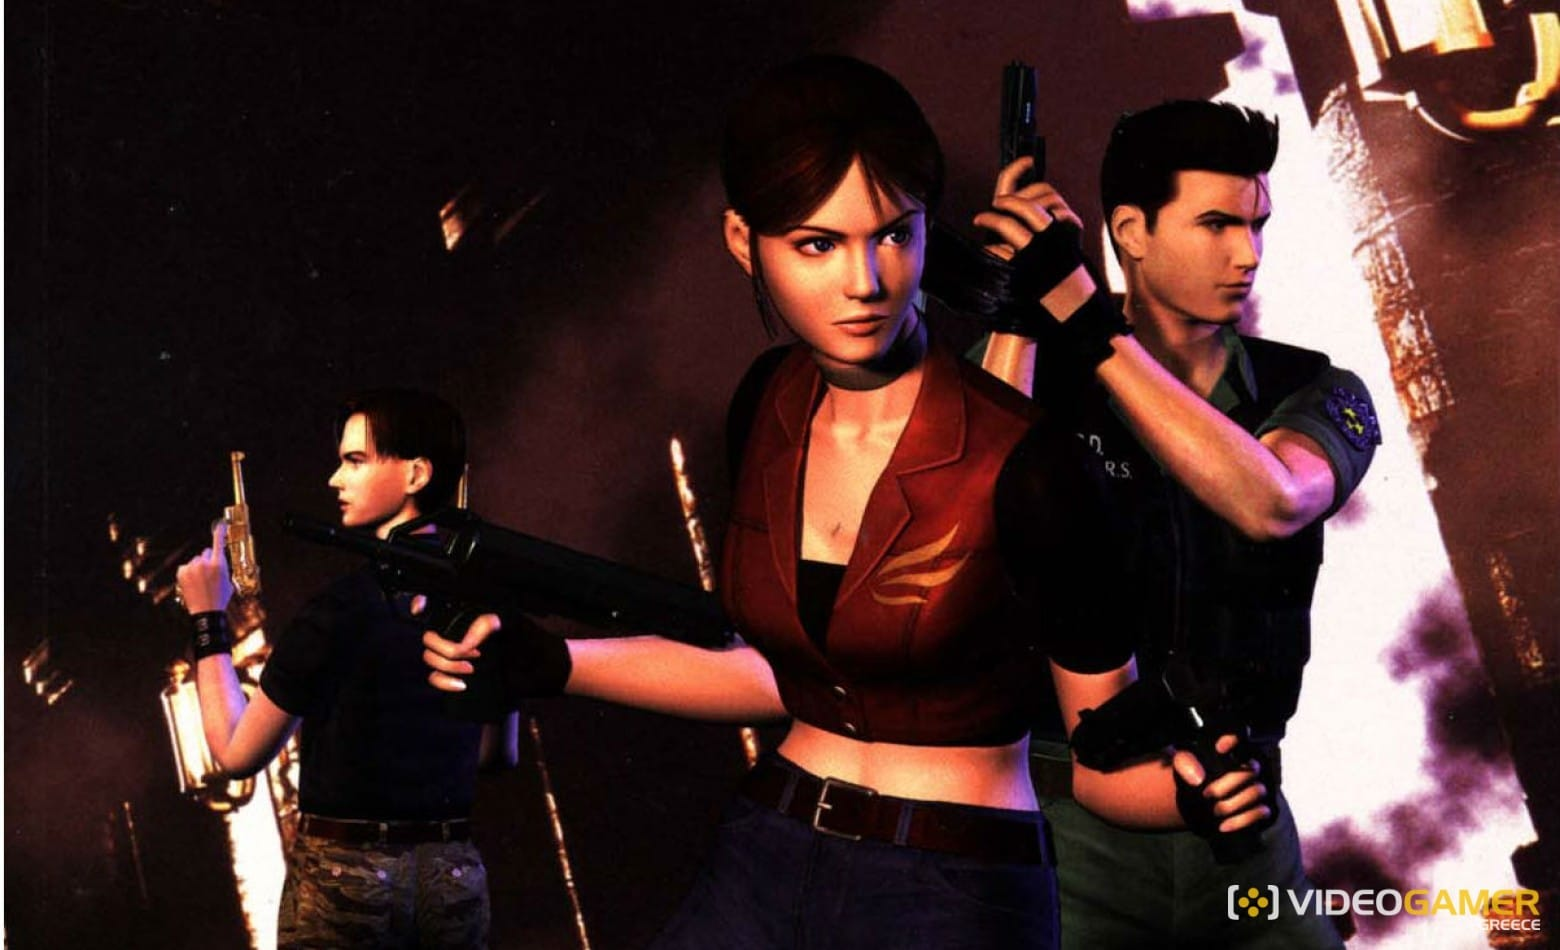 resident_evil_-_code_veronica_-_book_01_-_000_-_fc-1560x950_c